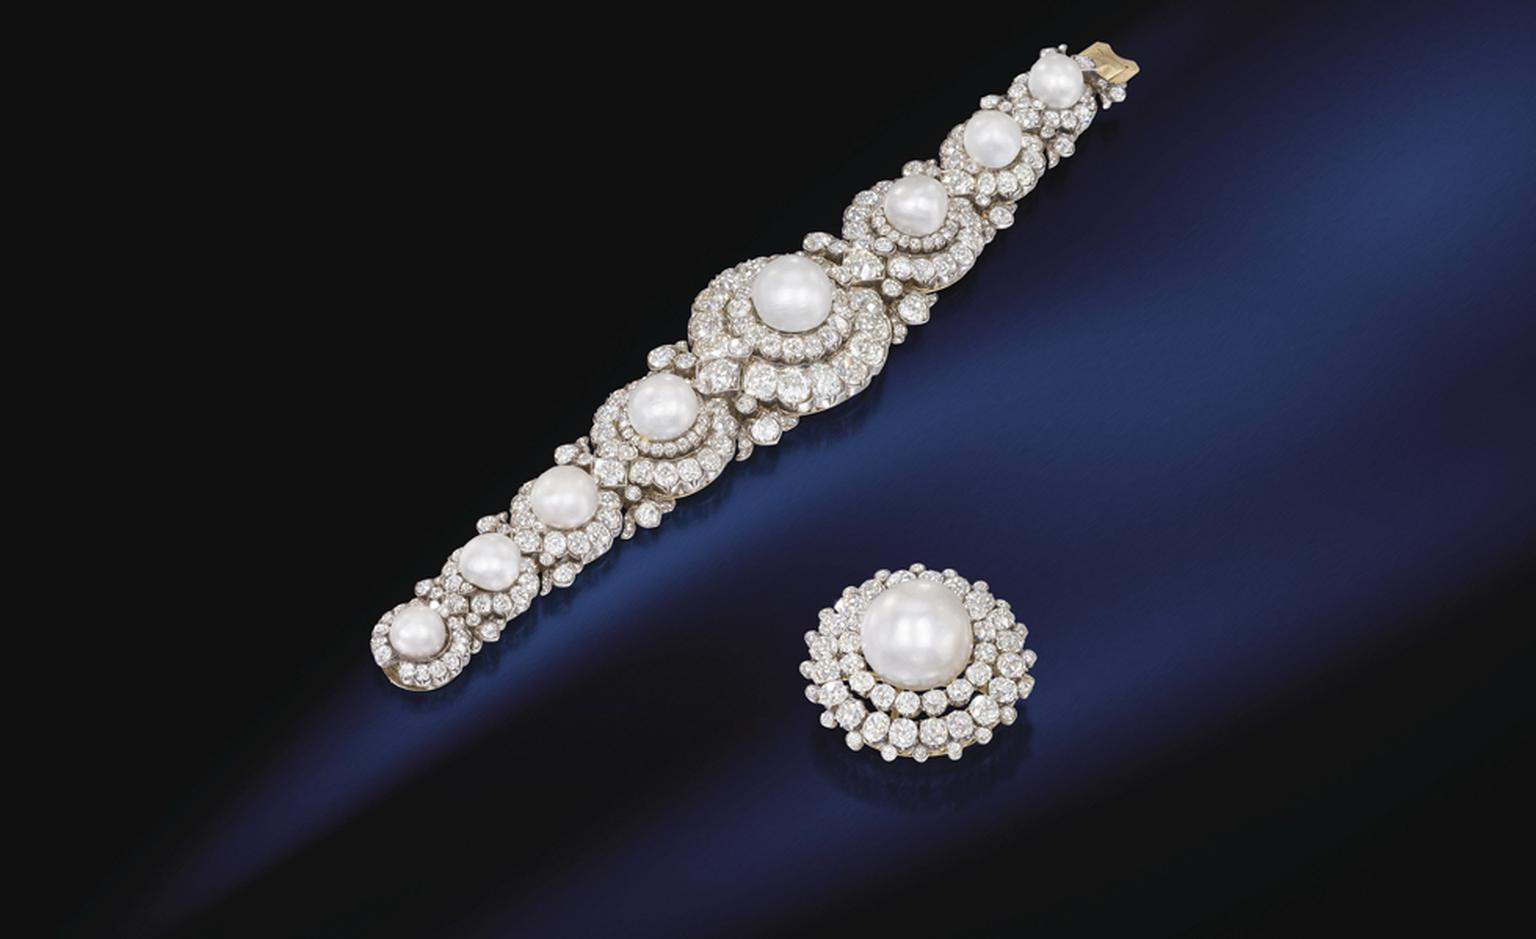 Lot 285. An historic pearl and diamond bracelet and brooch. Estimate £300,000 - £400,000. SOLD FOR £577,250